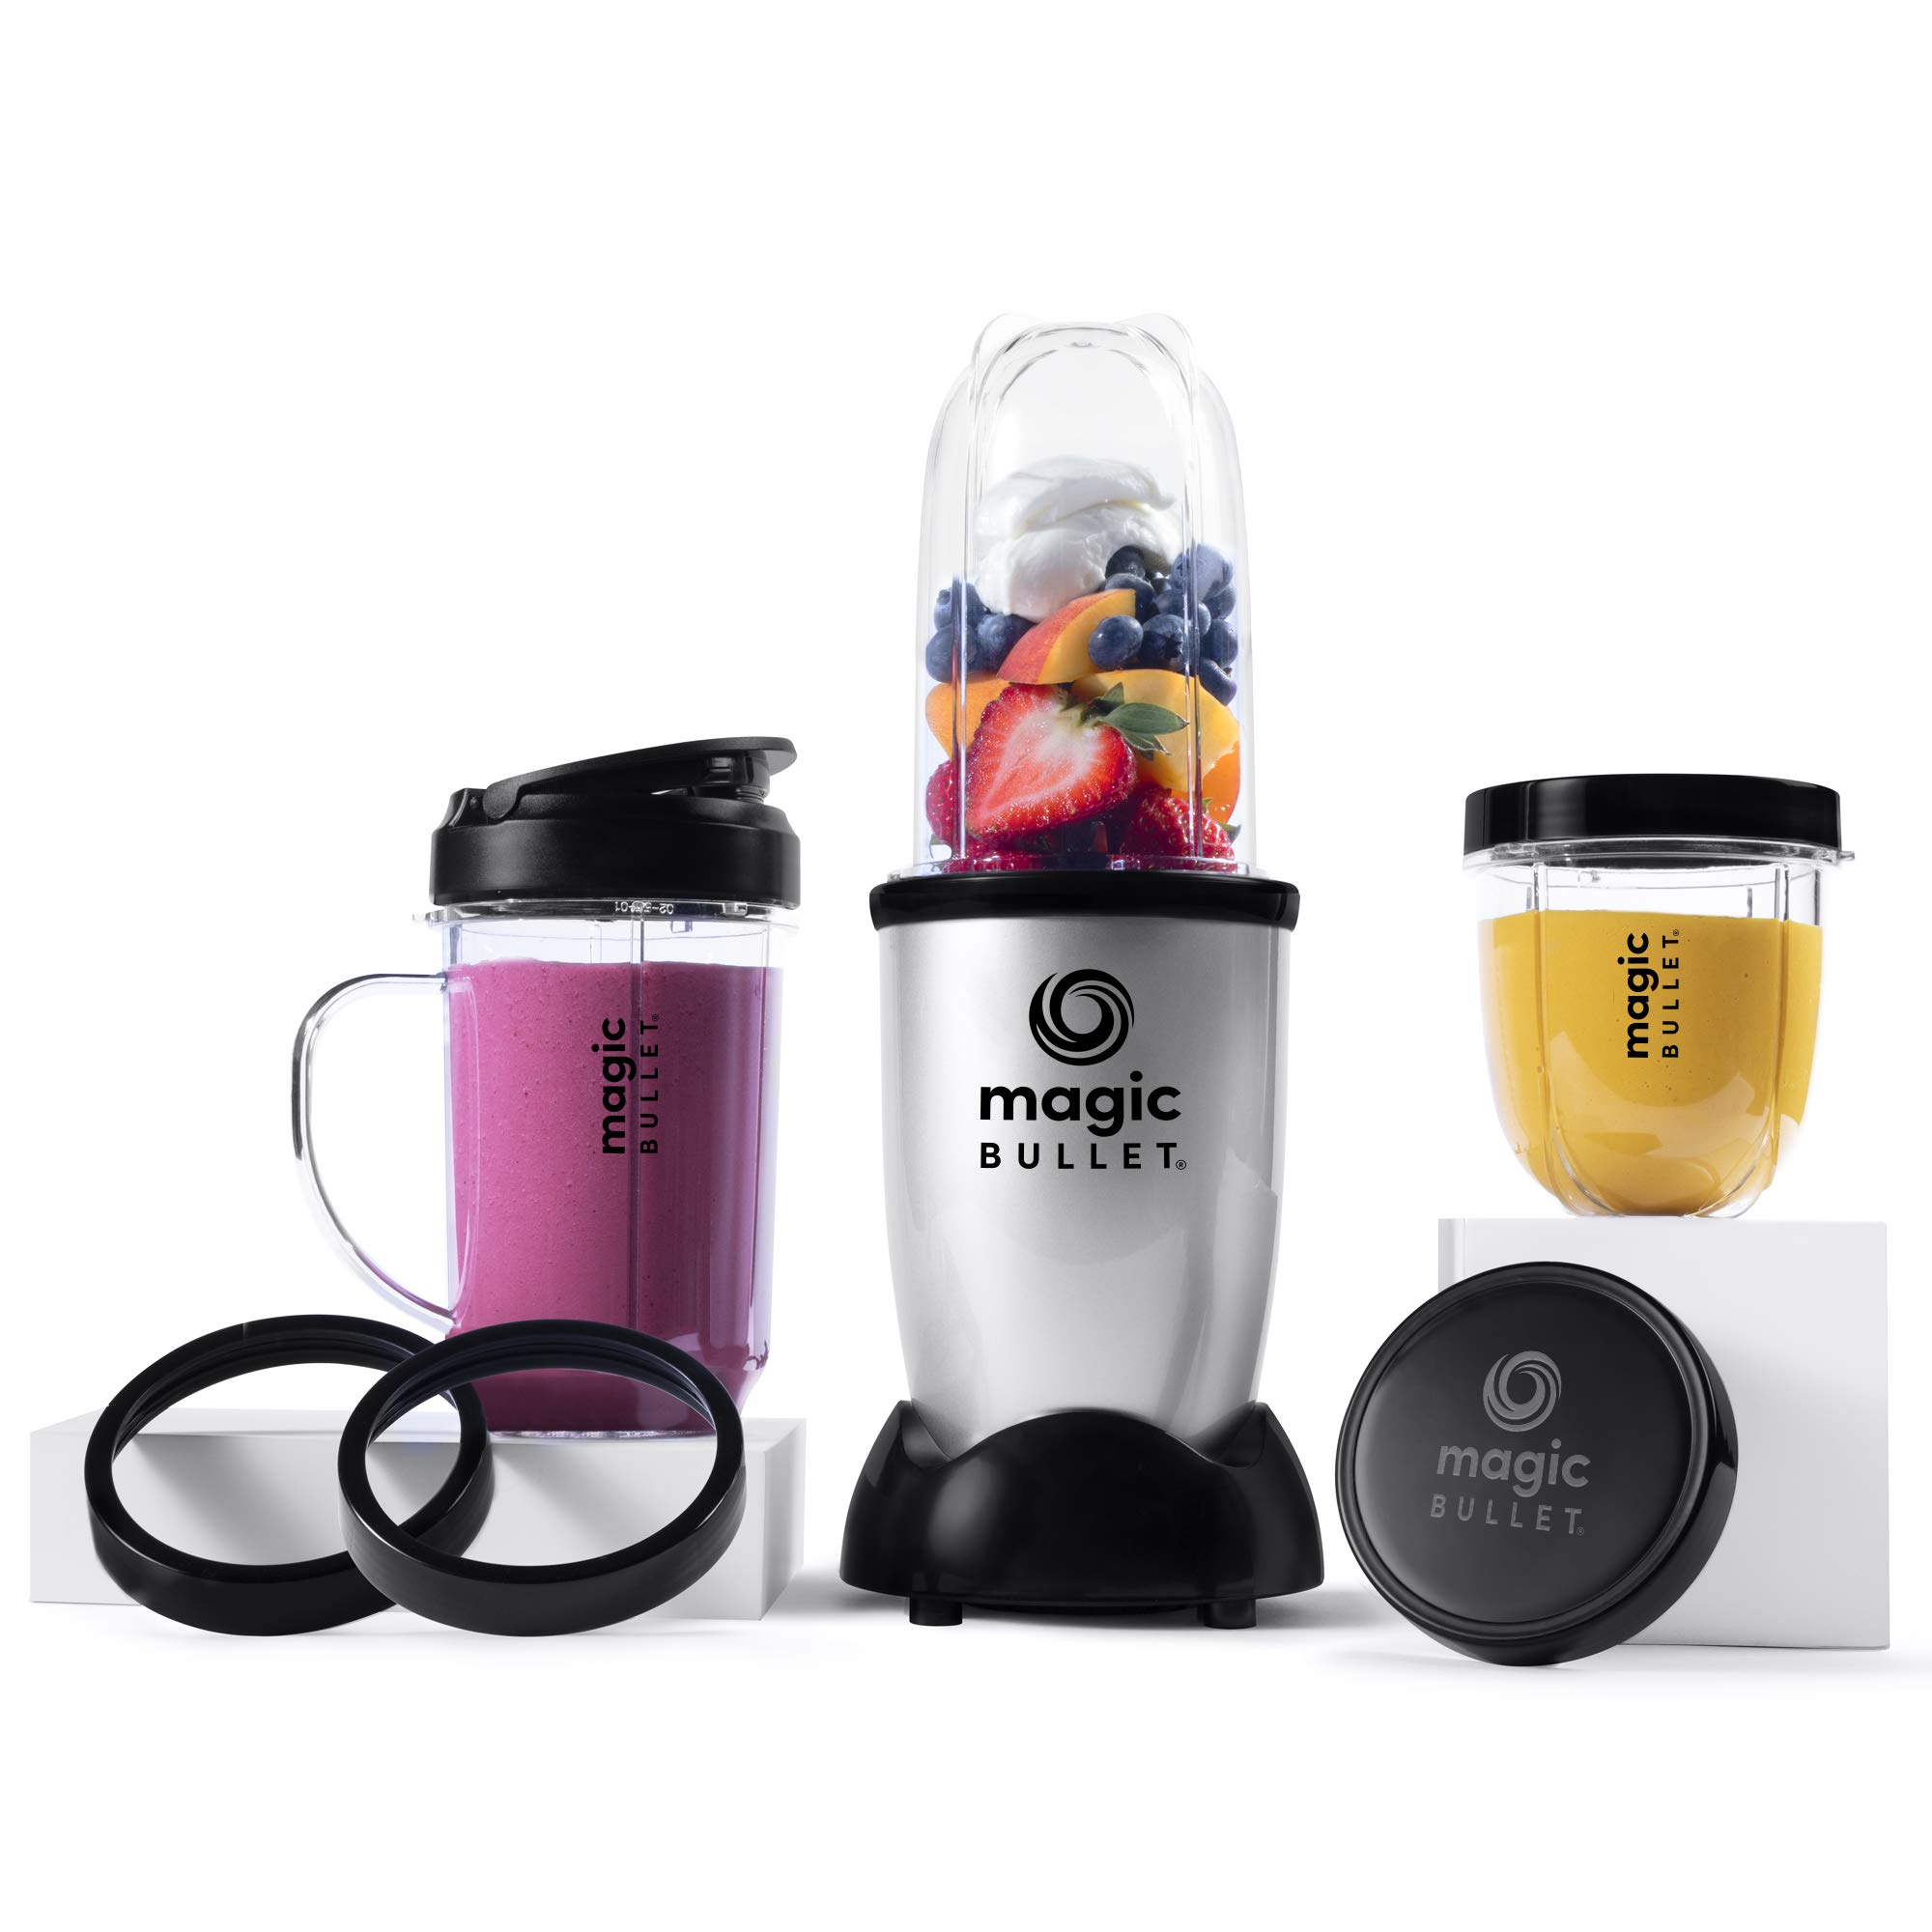 Magic Bullet Blender, Small, Silver: Amazon.es: Hogar